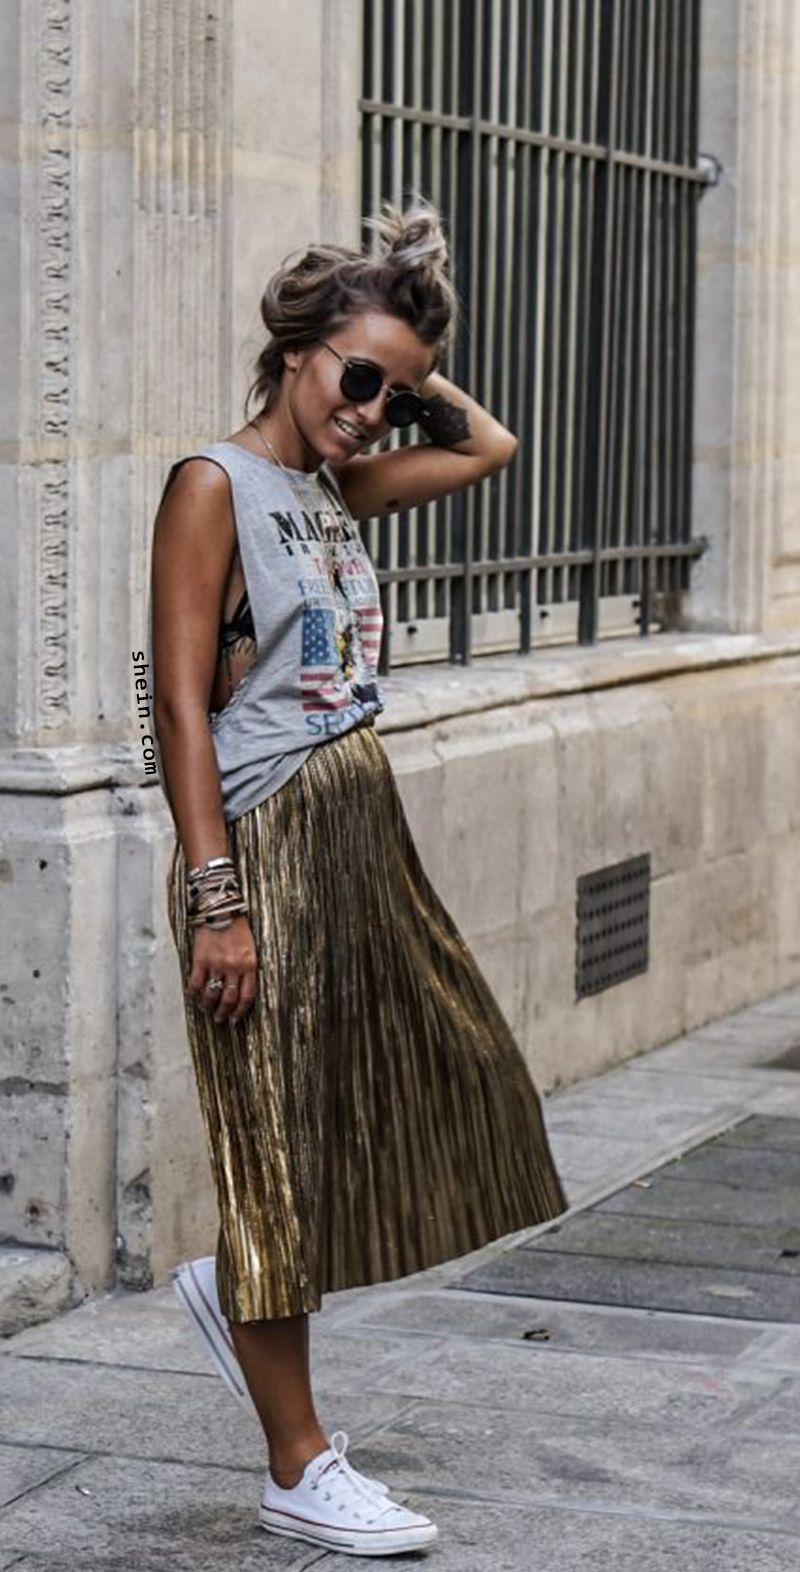 ee3e5eab4f Golden Loose Midi Skirt. Love pleated skirt with crop top. 40% off 1st  order!